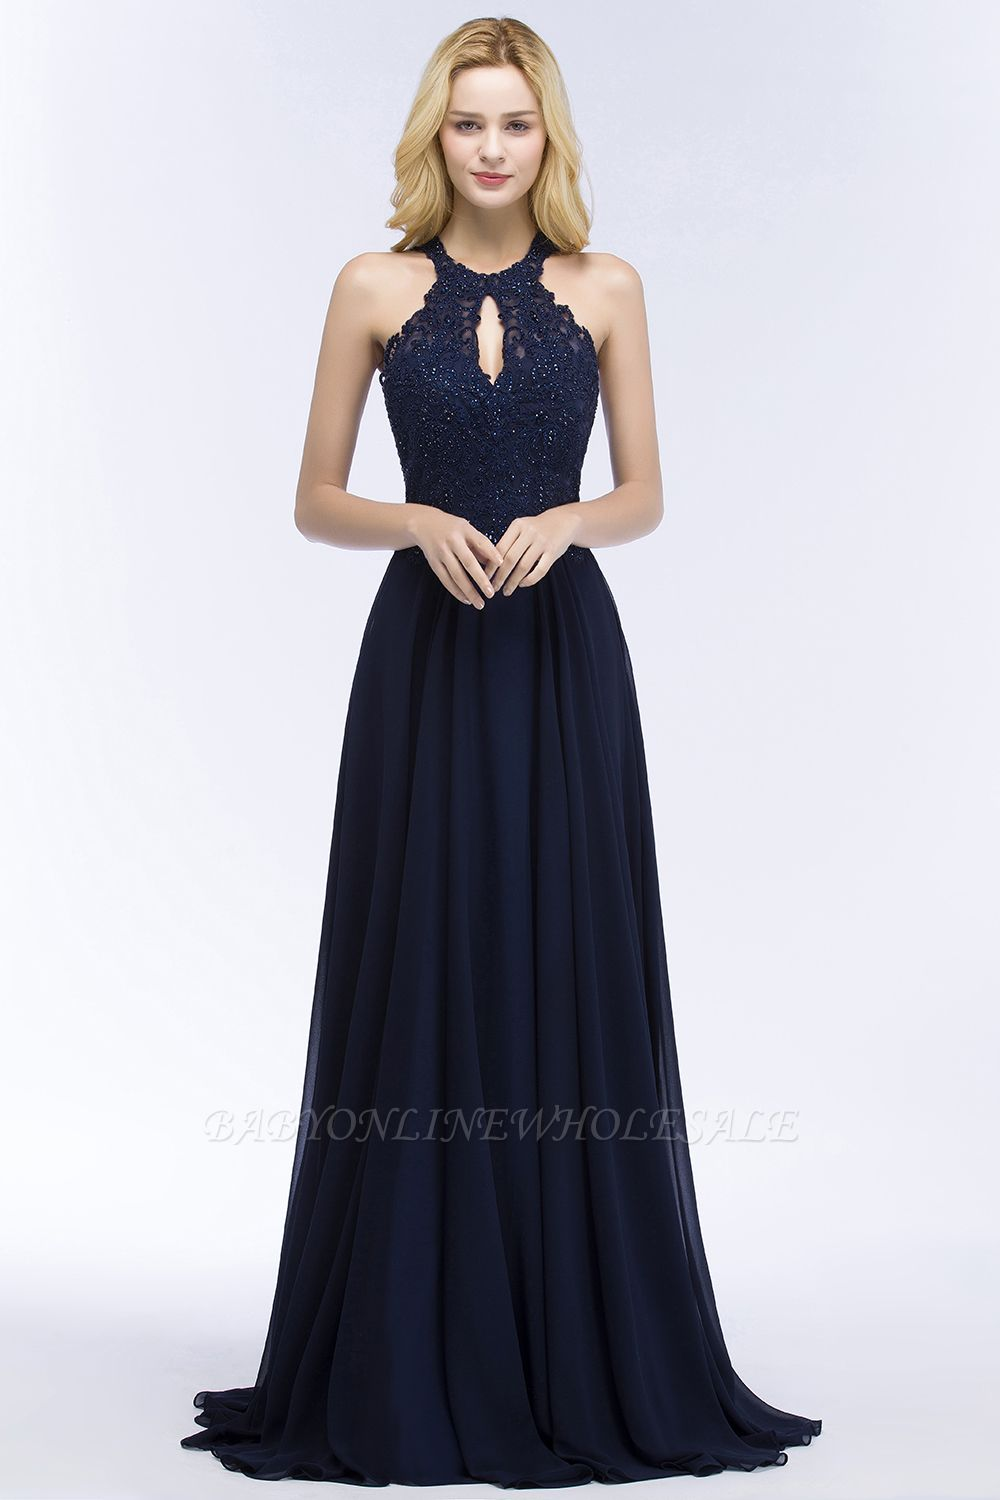 quality Prom Dresses from Babyonlinewholesale for All Women